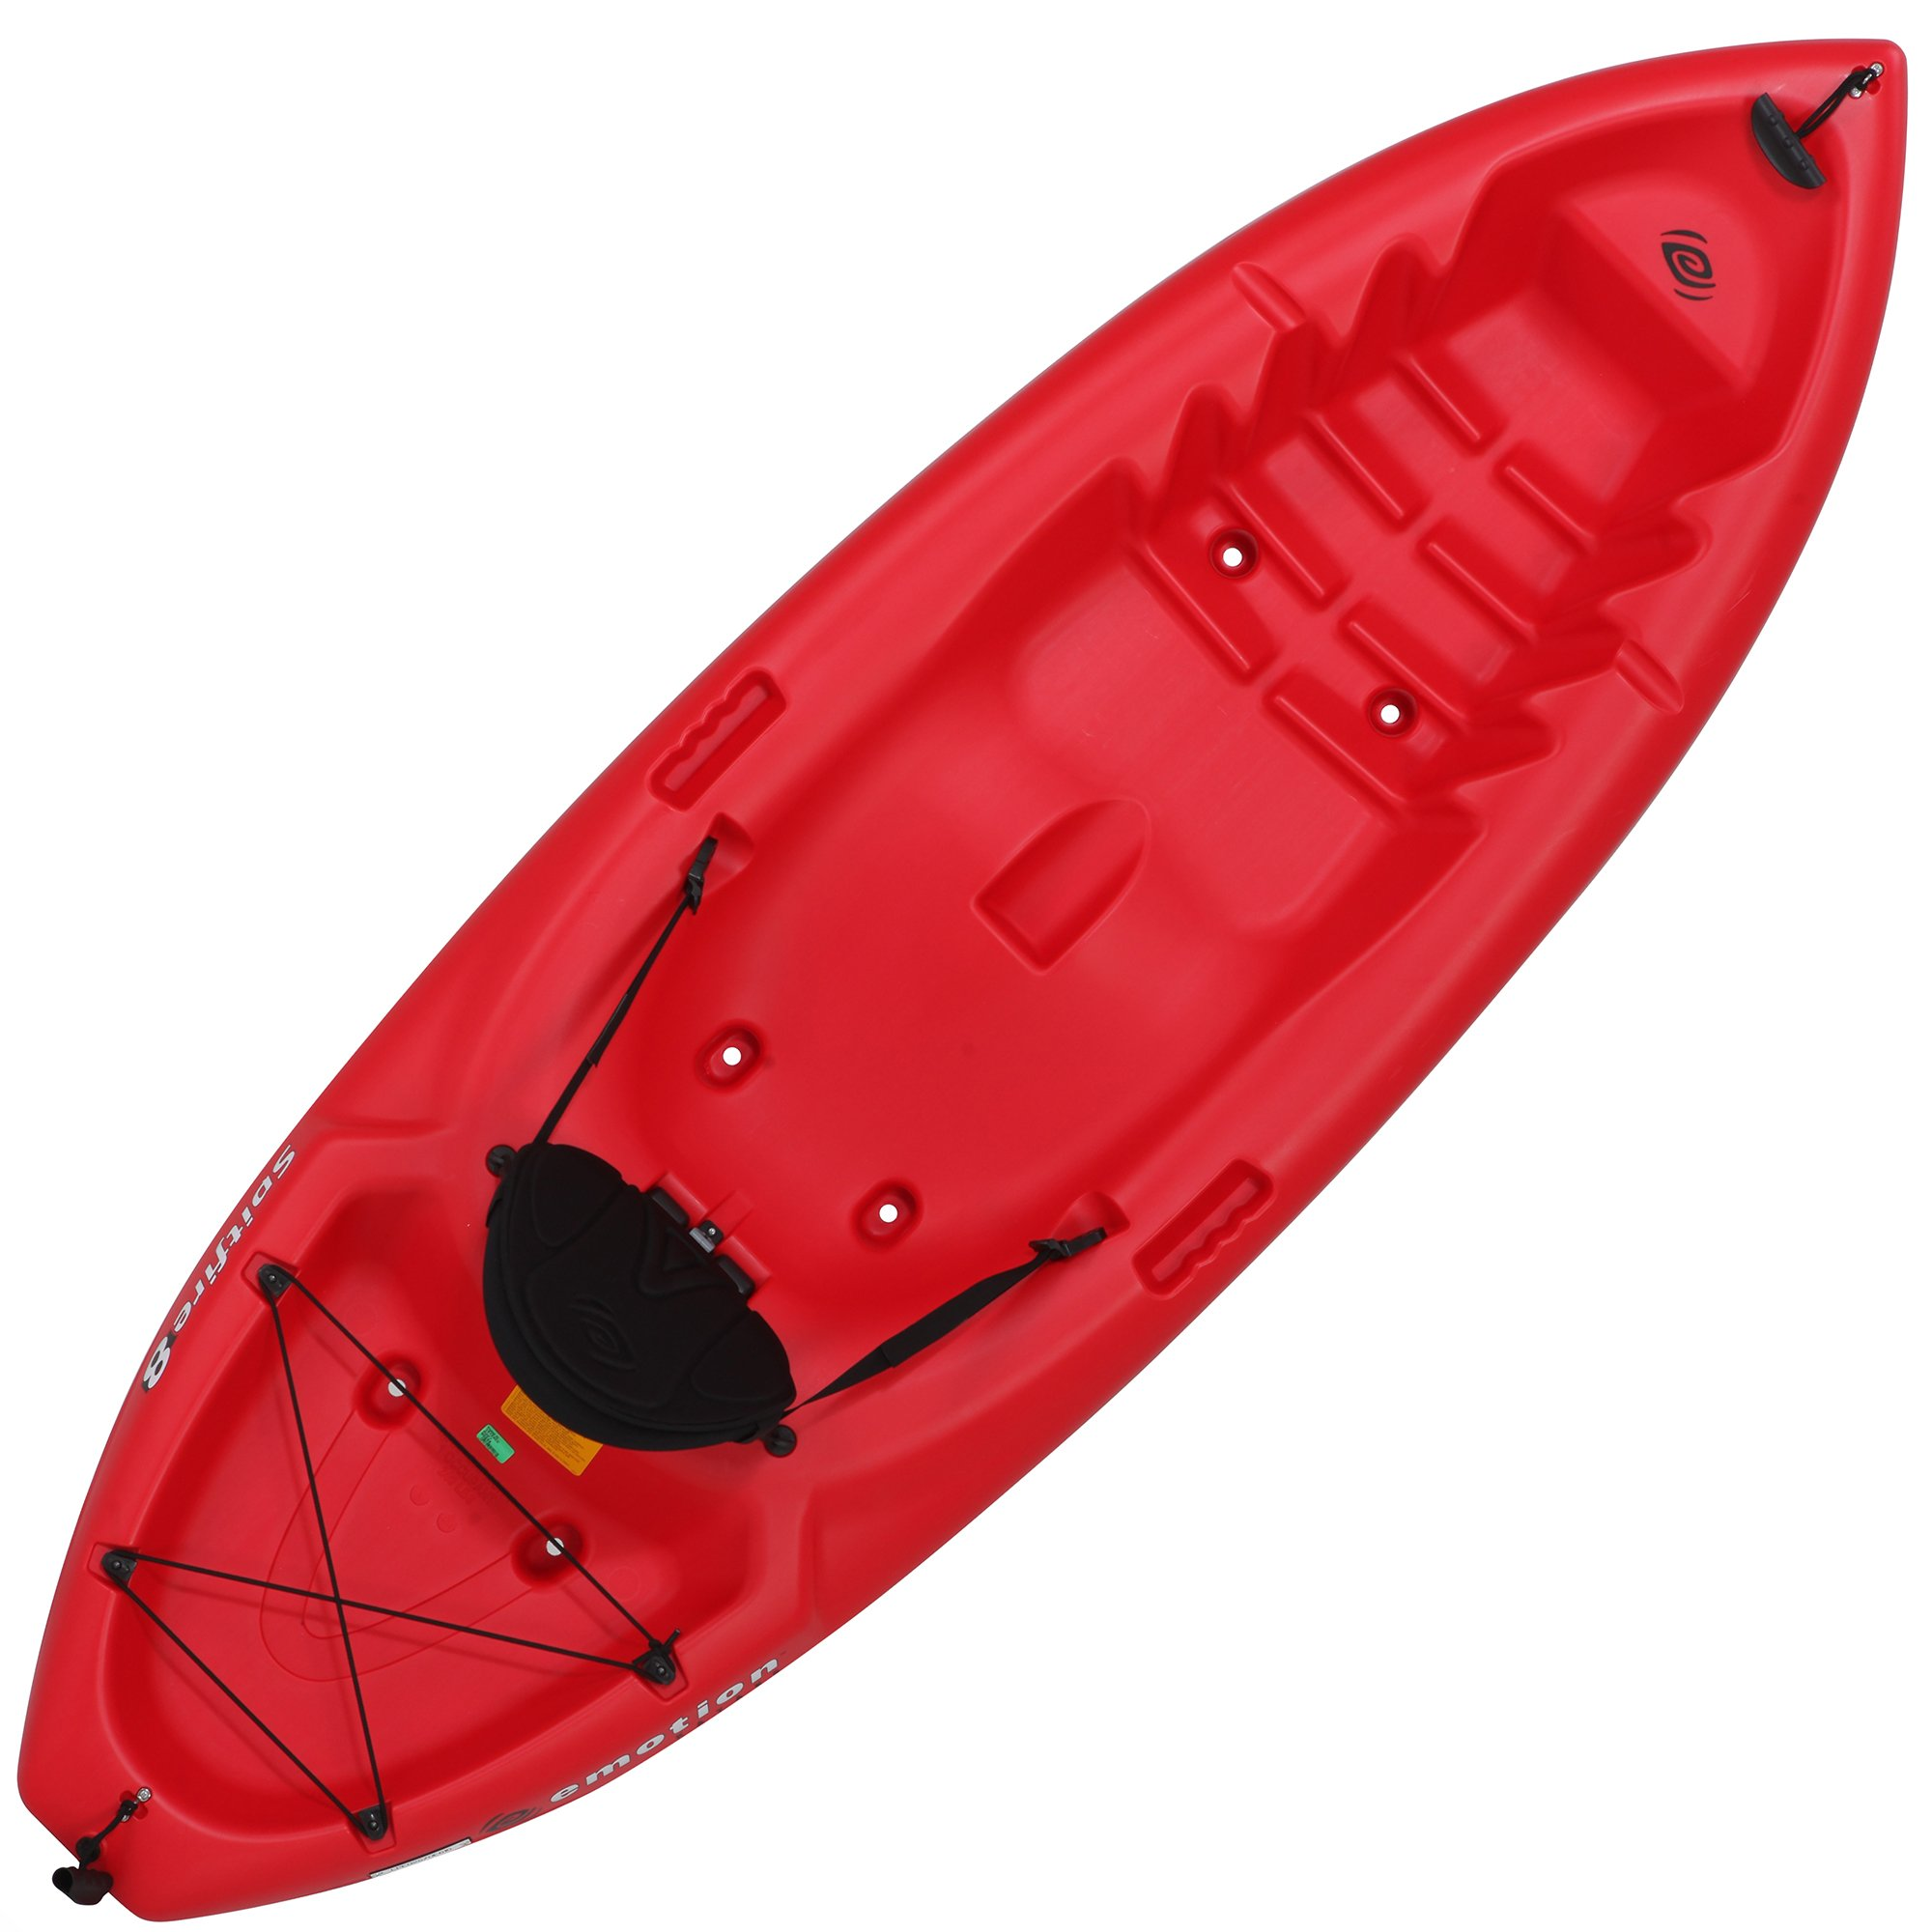 Emotion 90244 Spitfire Sit-On-Top 8 Foot Kayak, Red by Lifetime